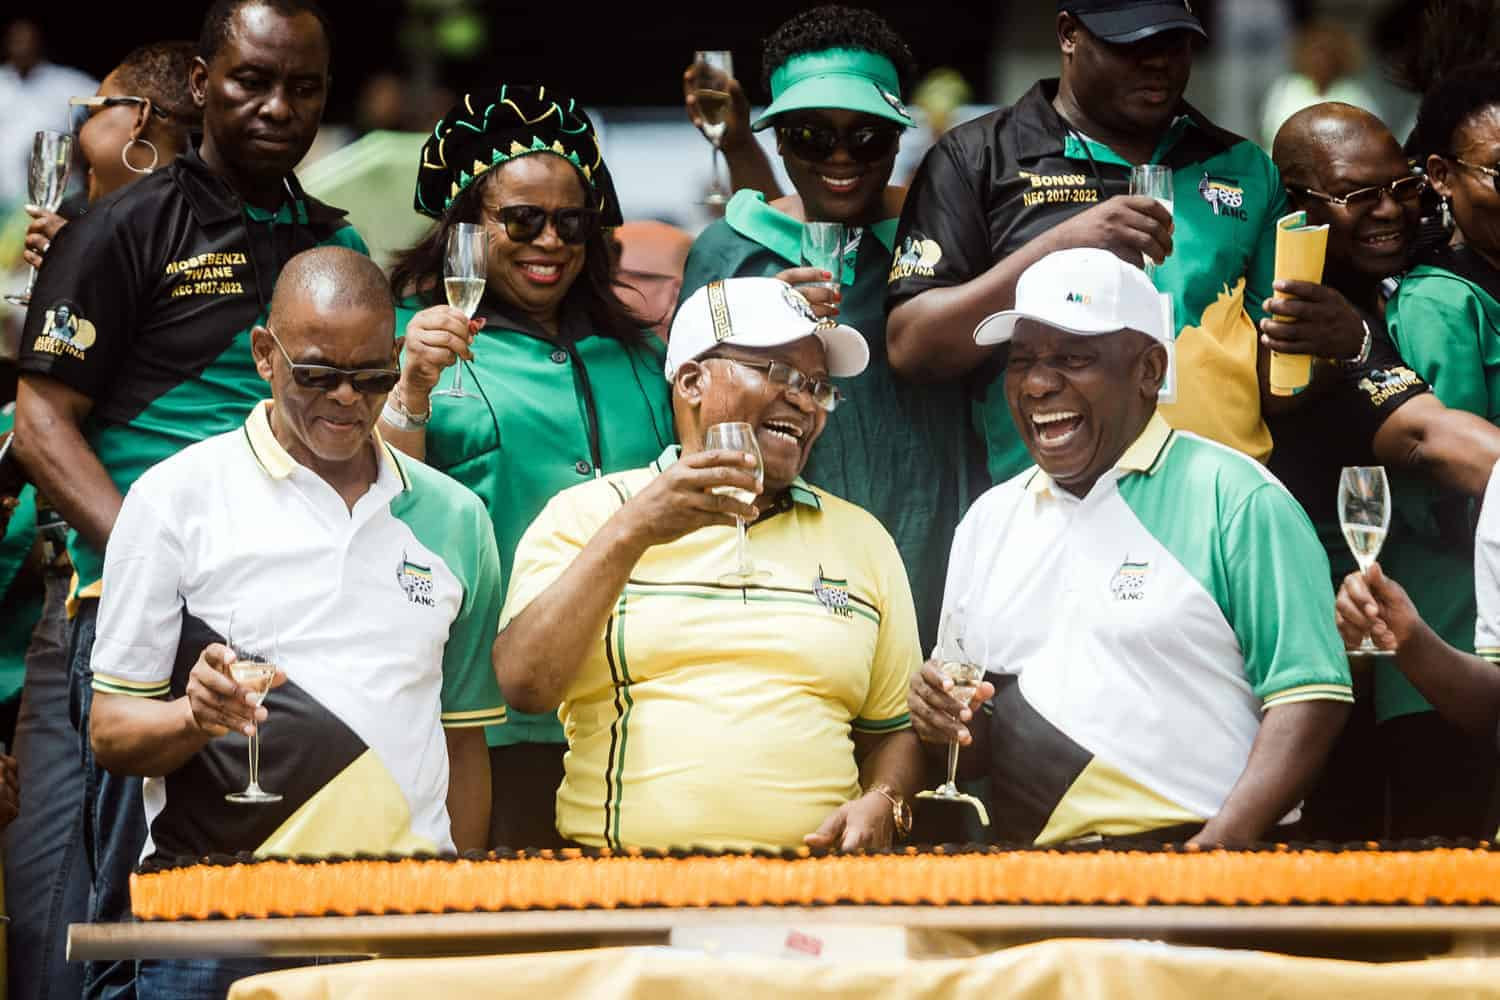 If ANC doesn't listen to voices of reason, it will go down